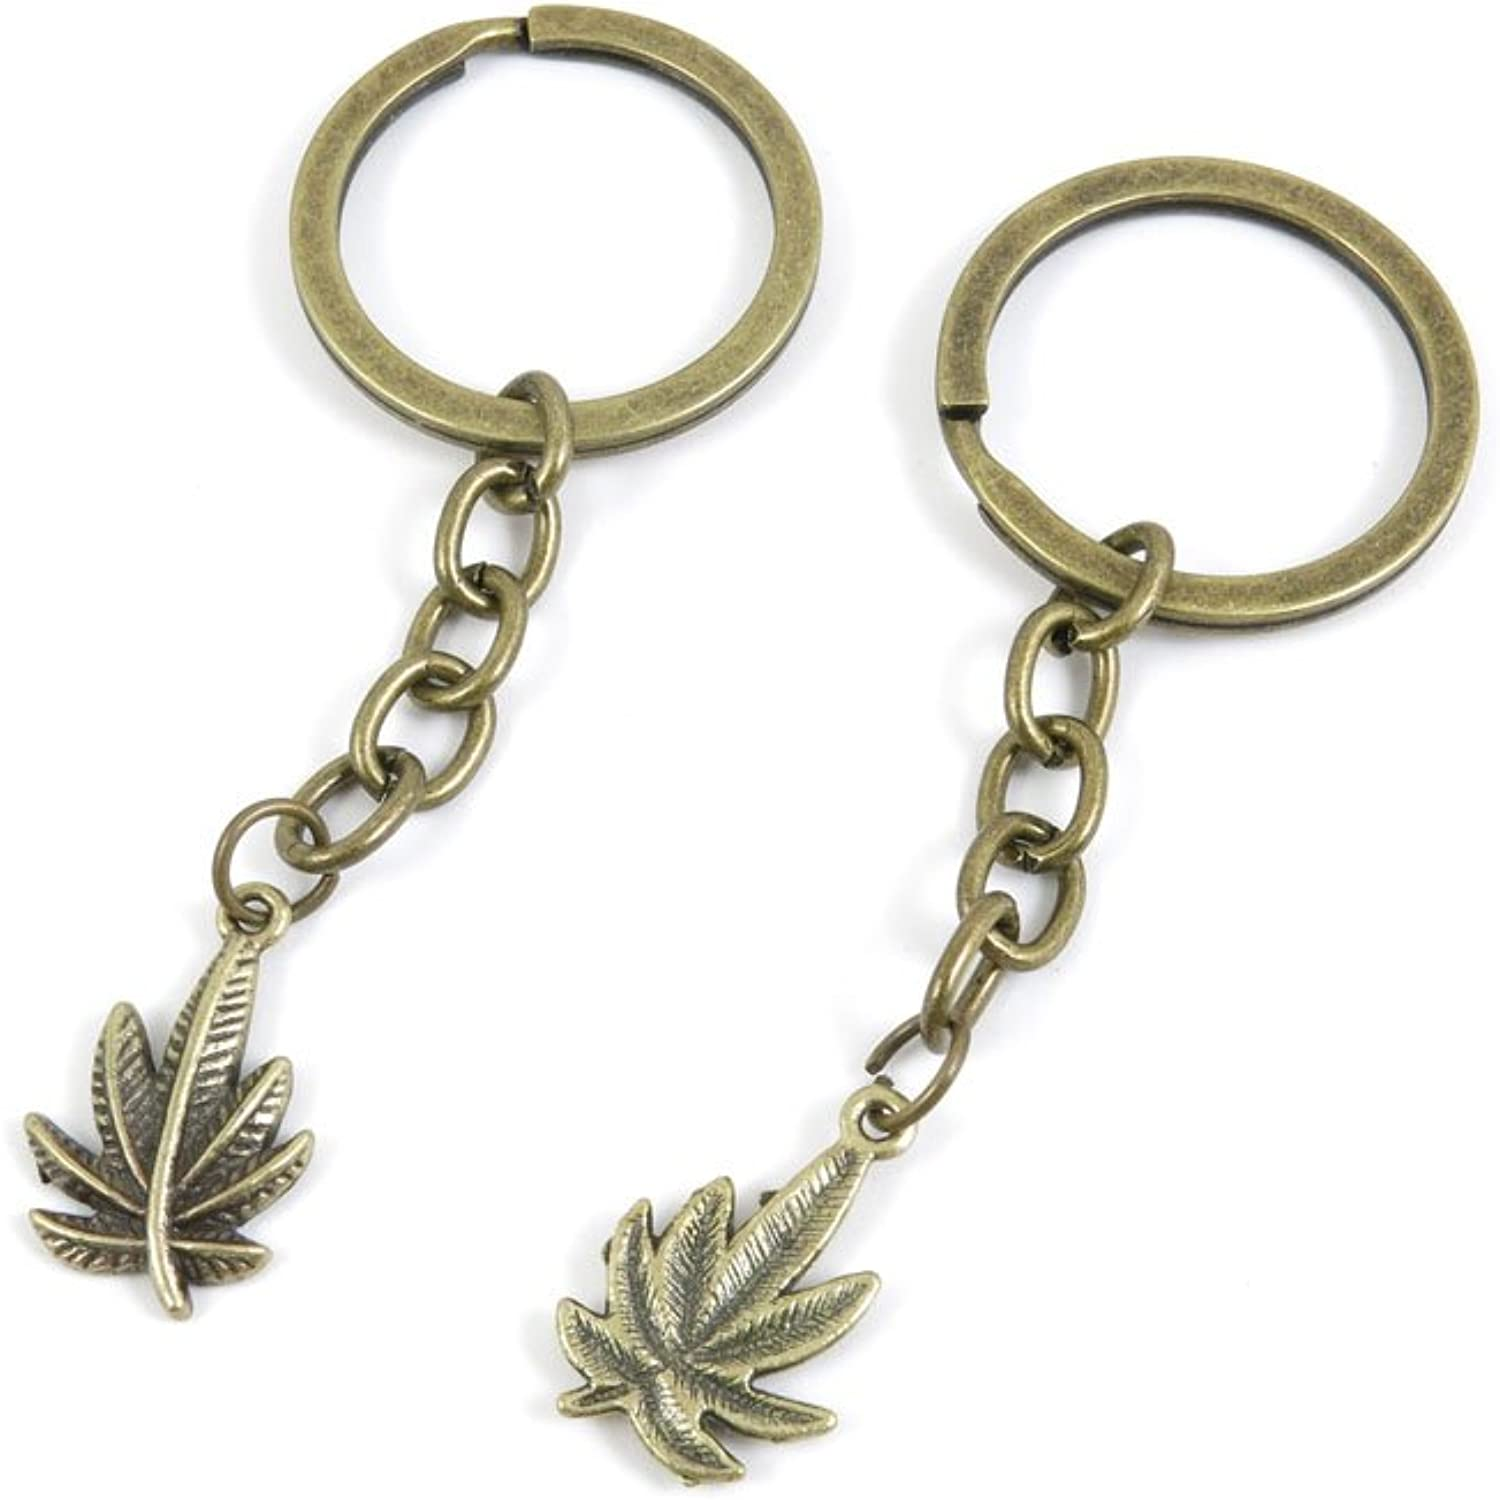 230 Pieces Fashion Jewelry Keyring Keychain Door Car Key Tag Ring Chain Supplier Supply Wholesale Bulk Lots C7IC4 Leaves Leaf